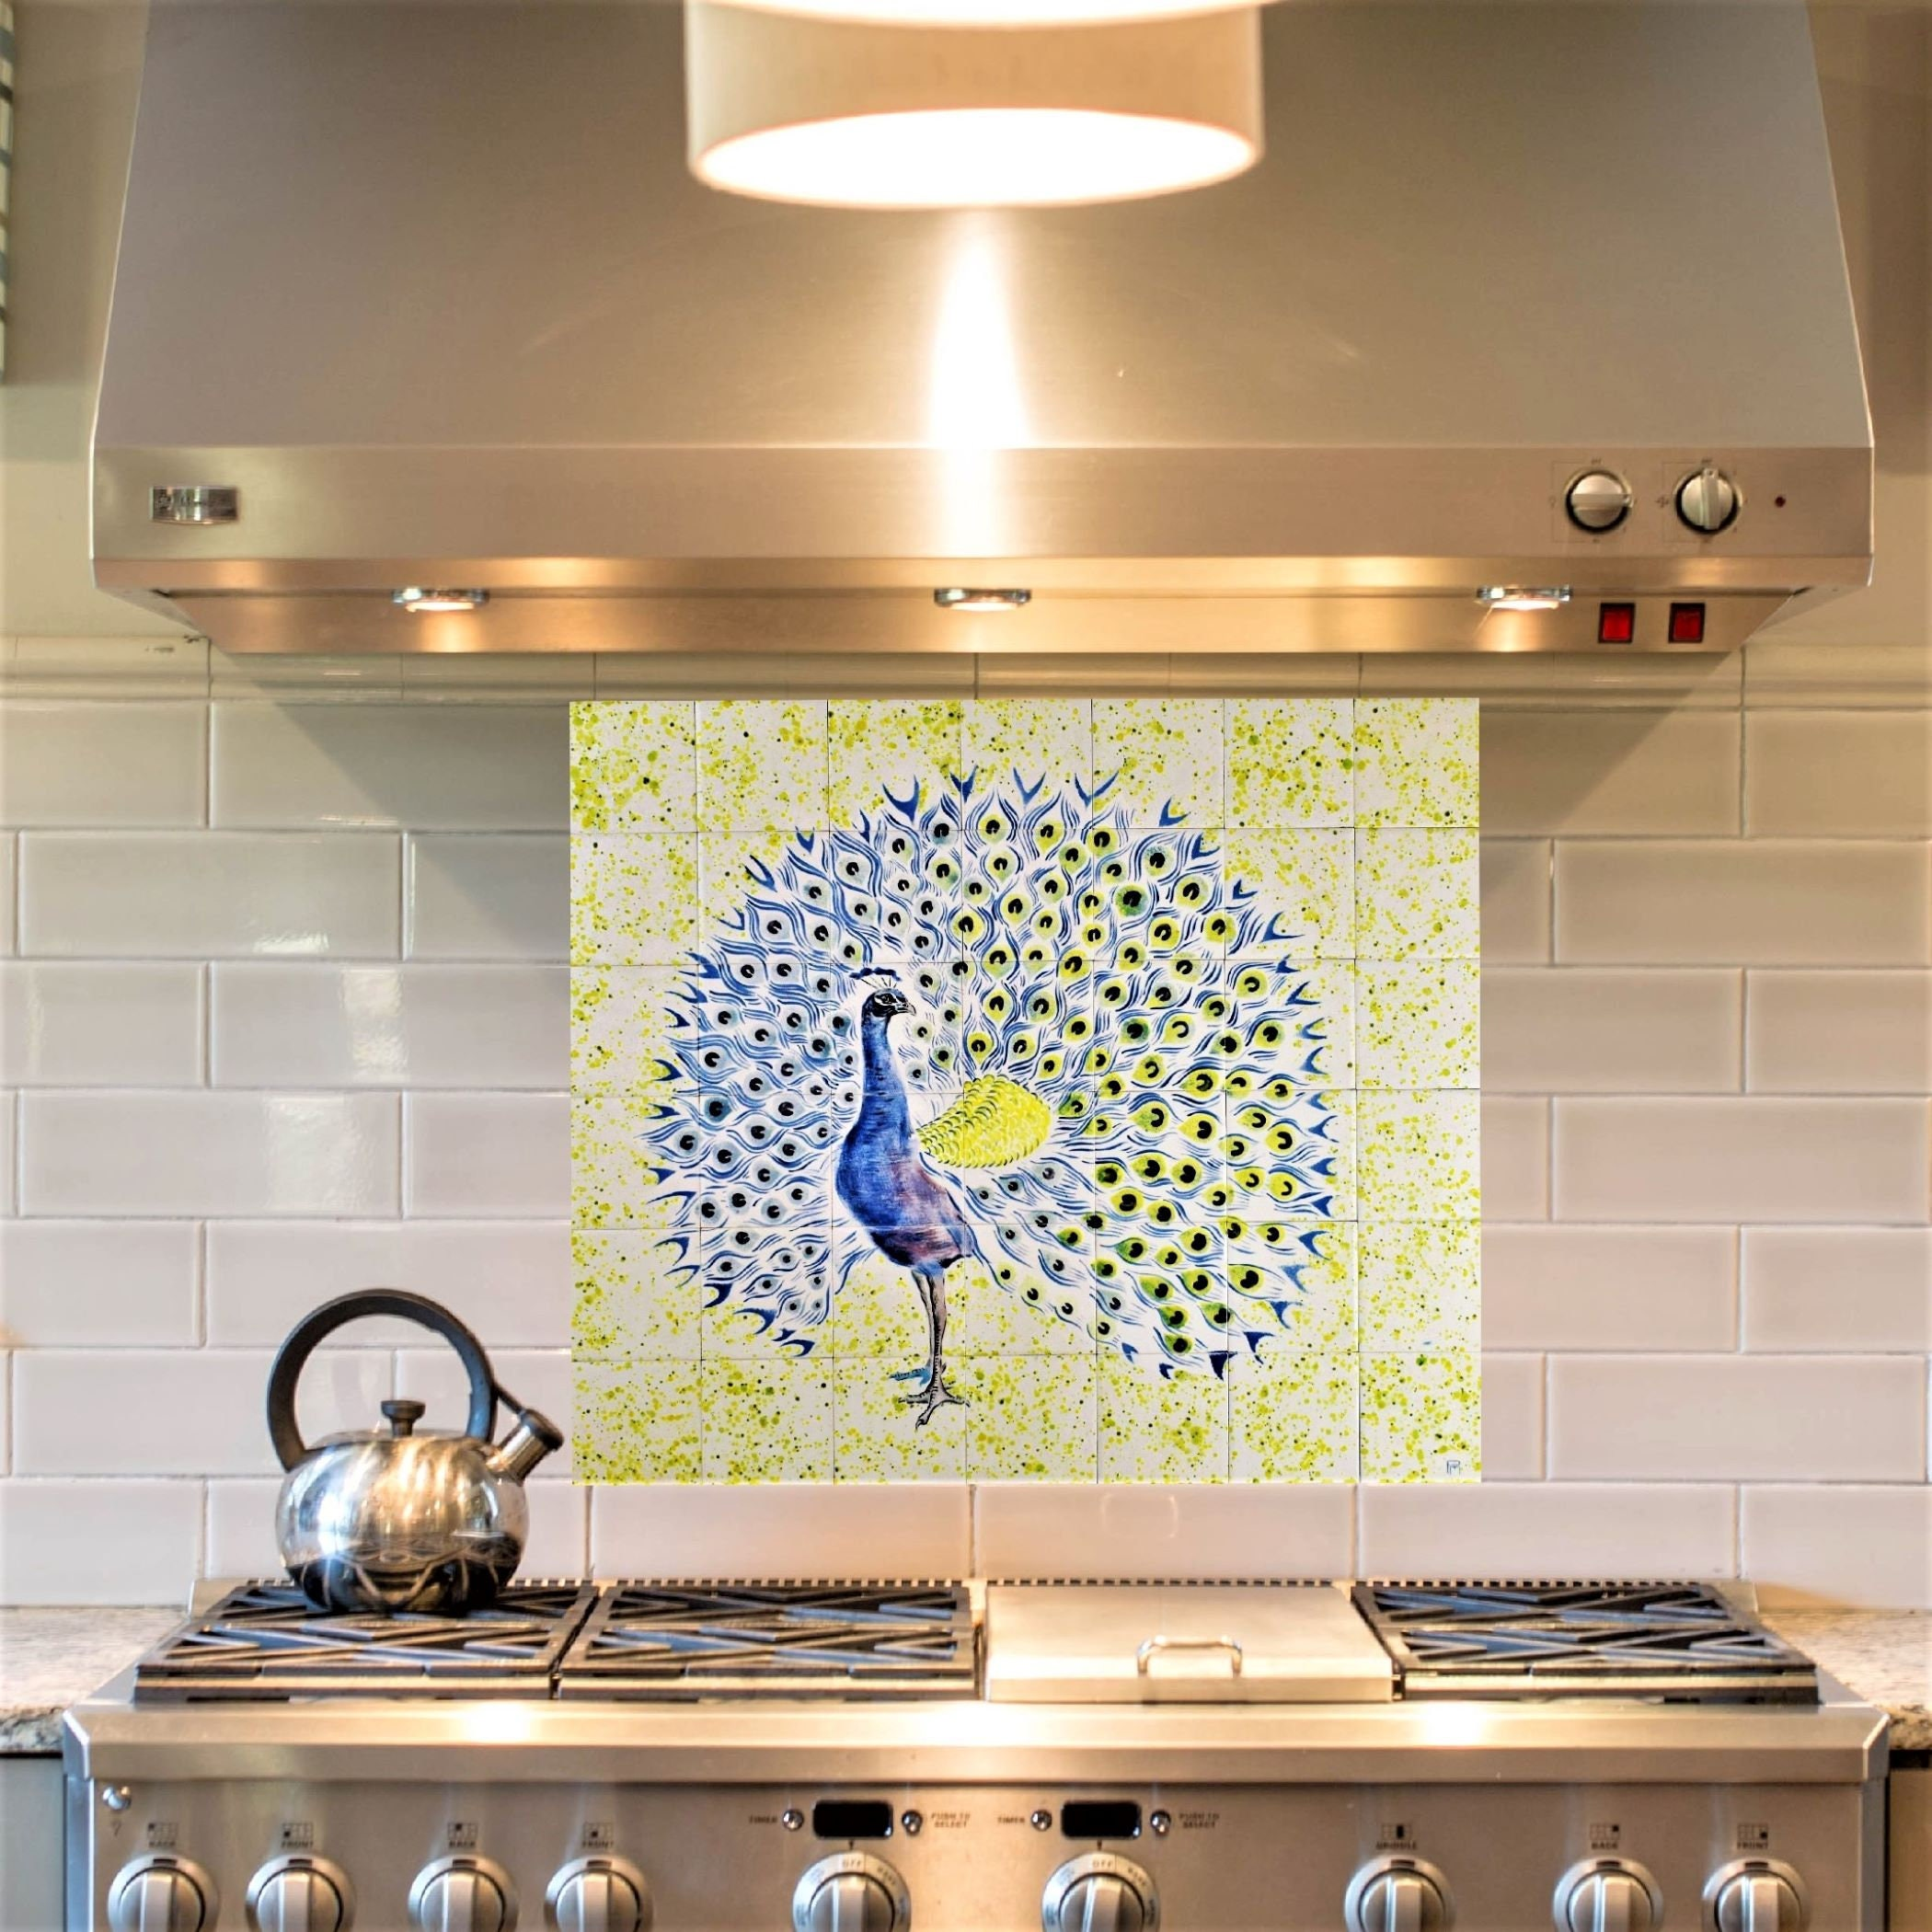 - Backsplash Tiles, Hand Painted, Peacock, Tile Mural. 42 Piece Tile